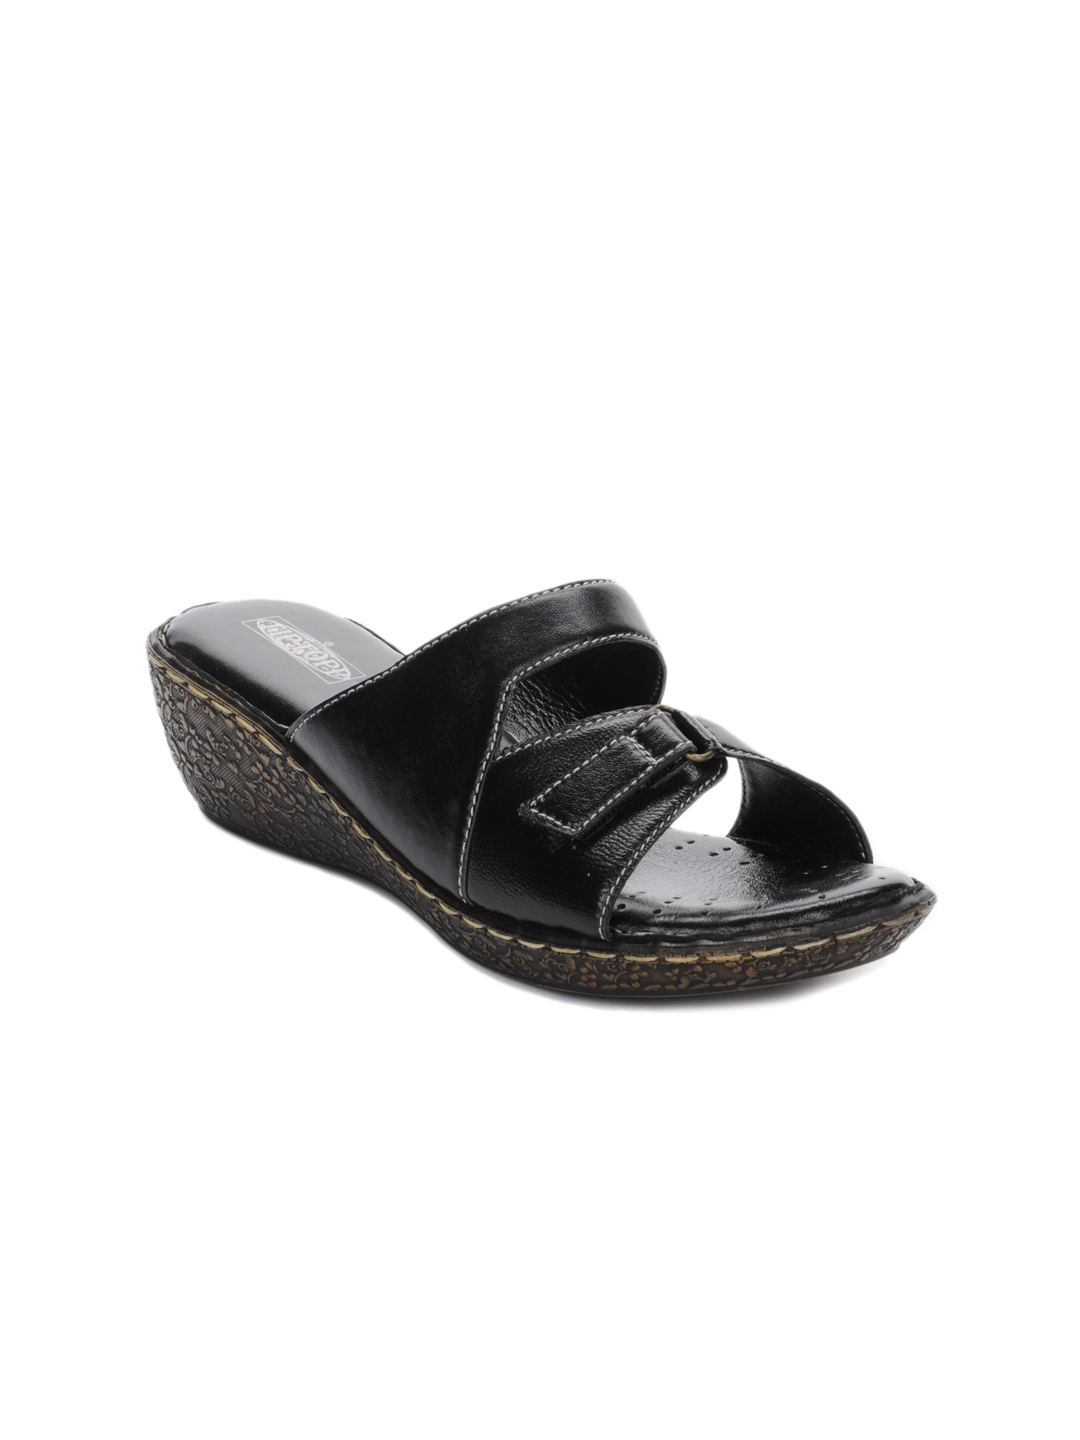 Tiptopp Women Black Sandals